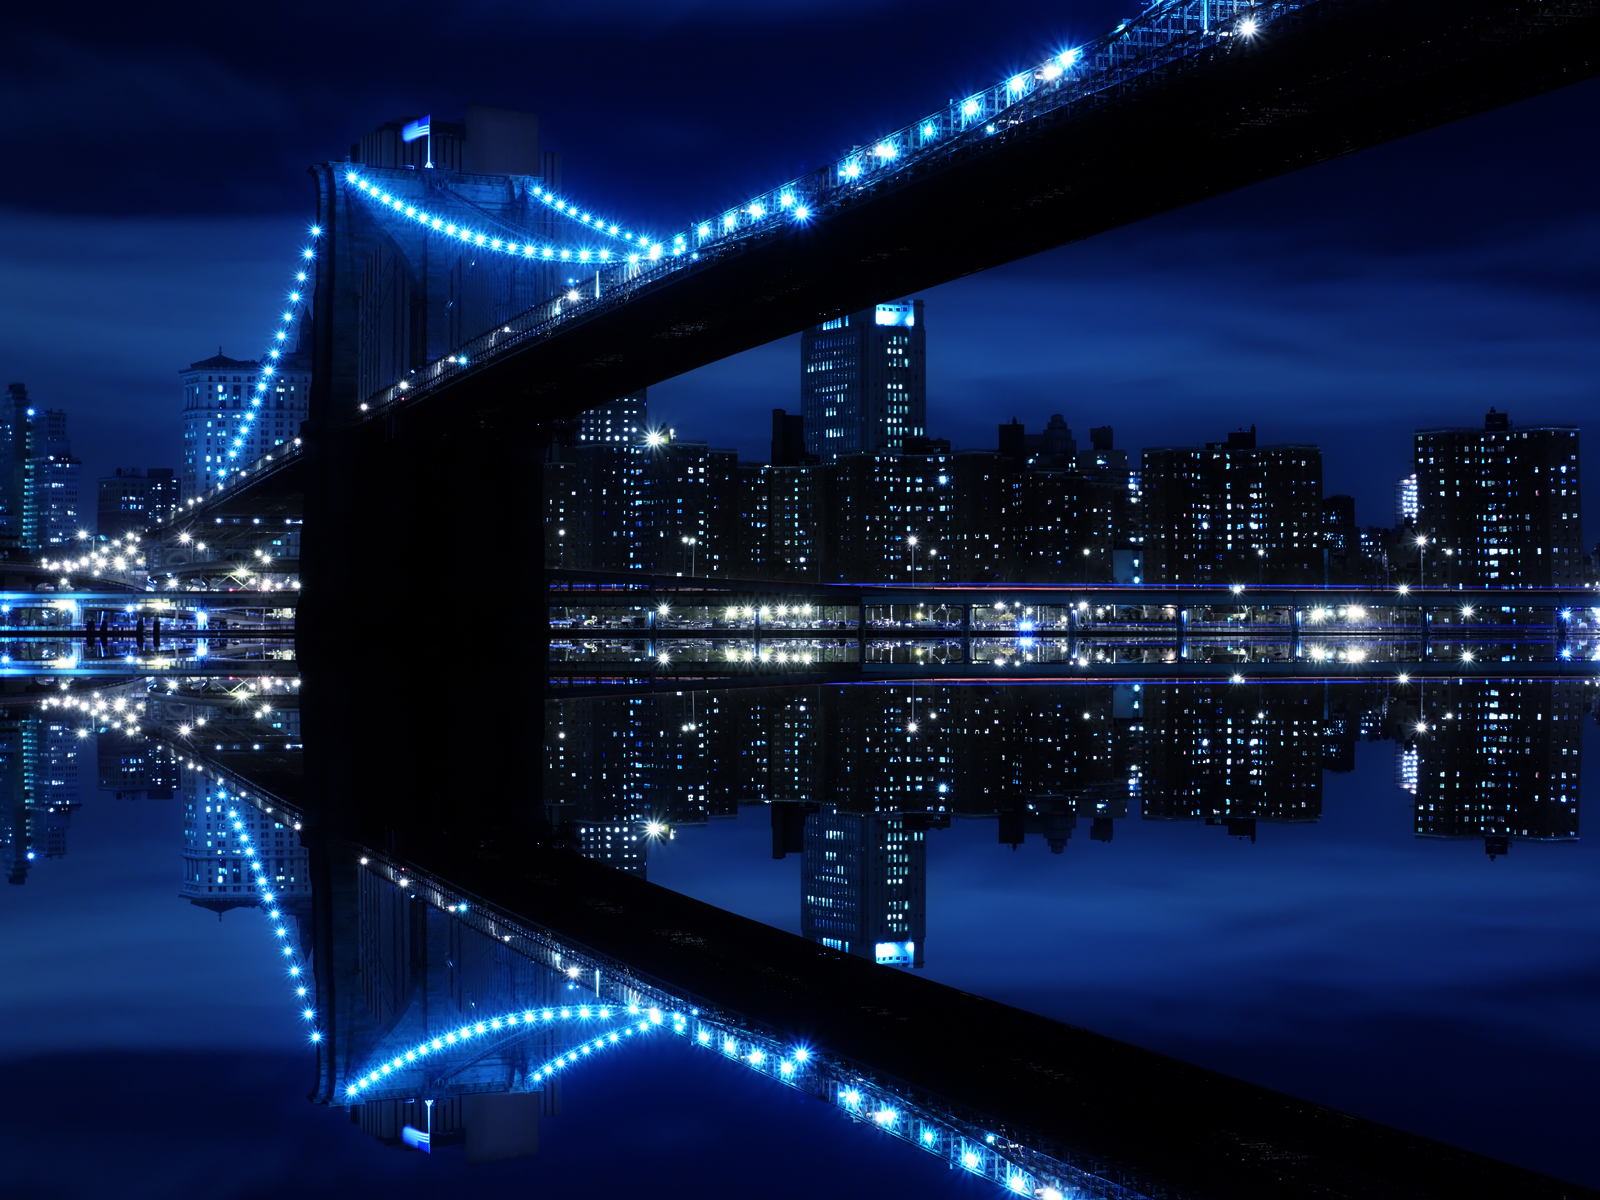 Blue City Night Reflection Wallpaper And Background Image